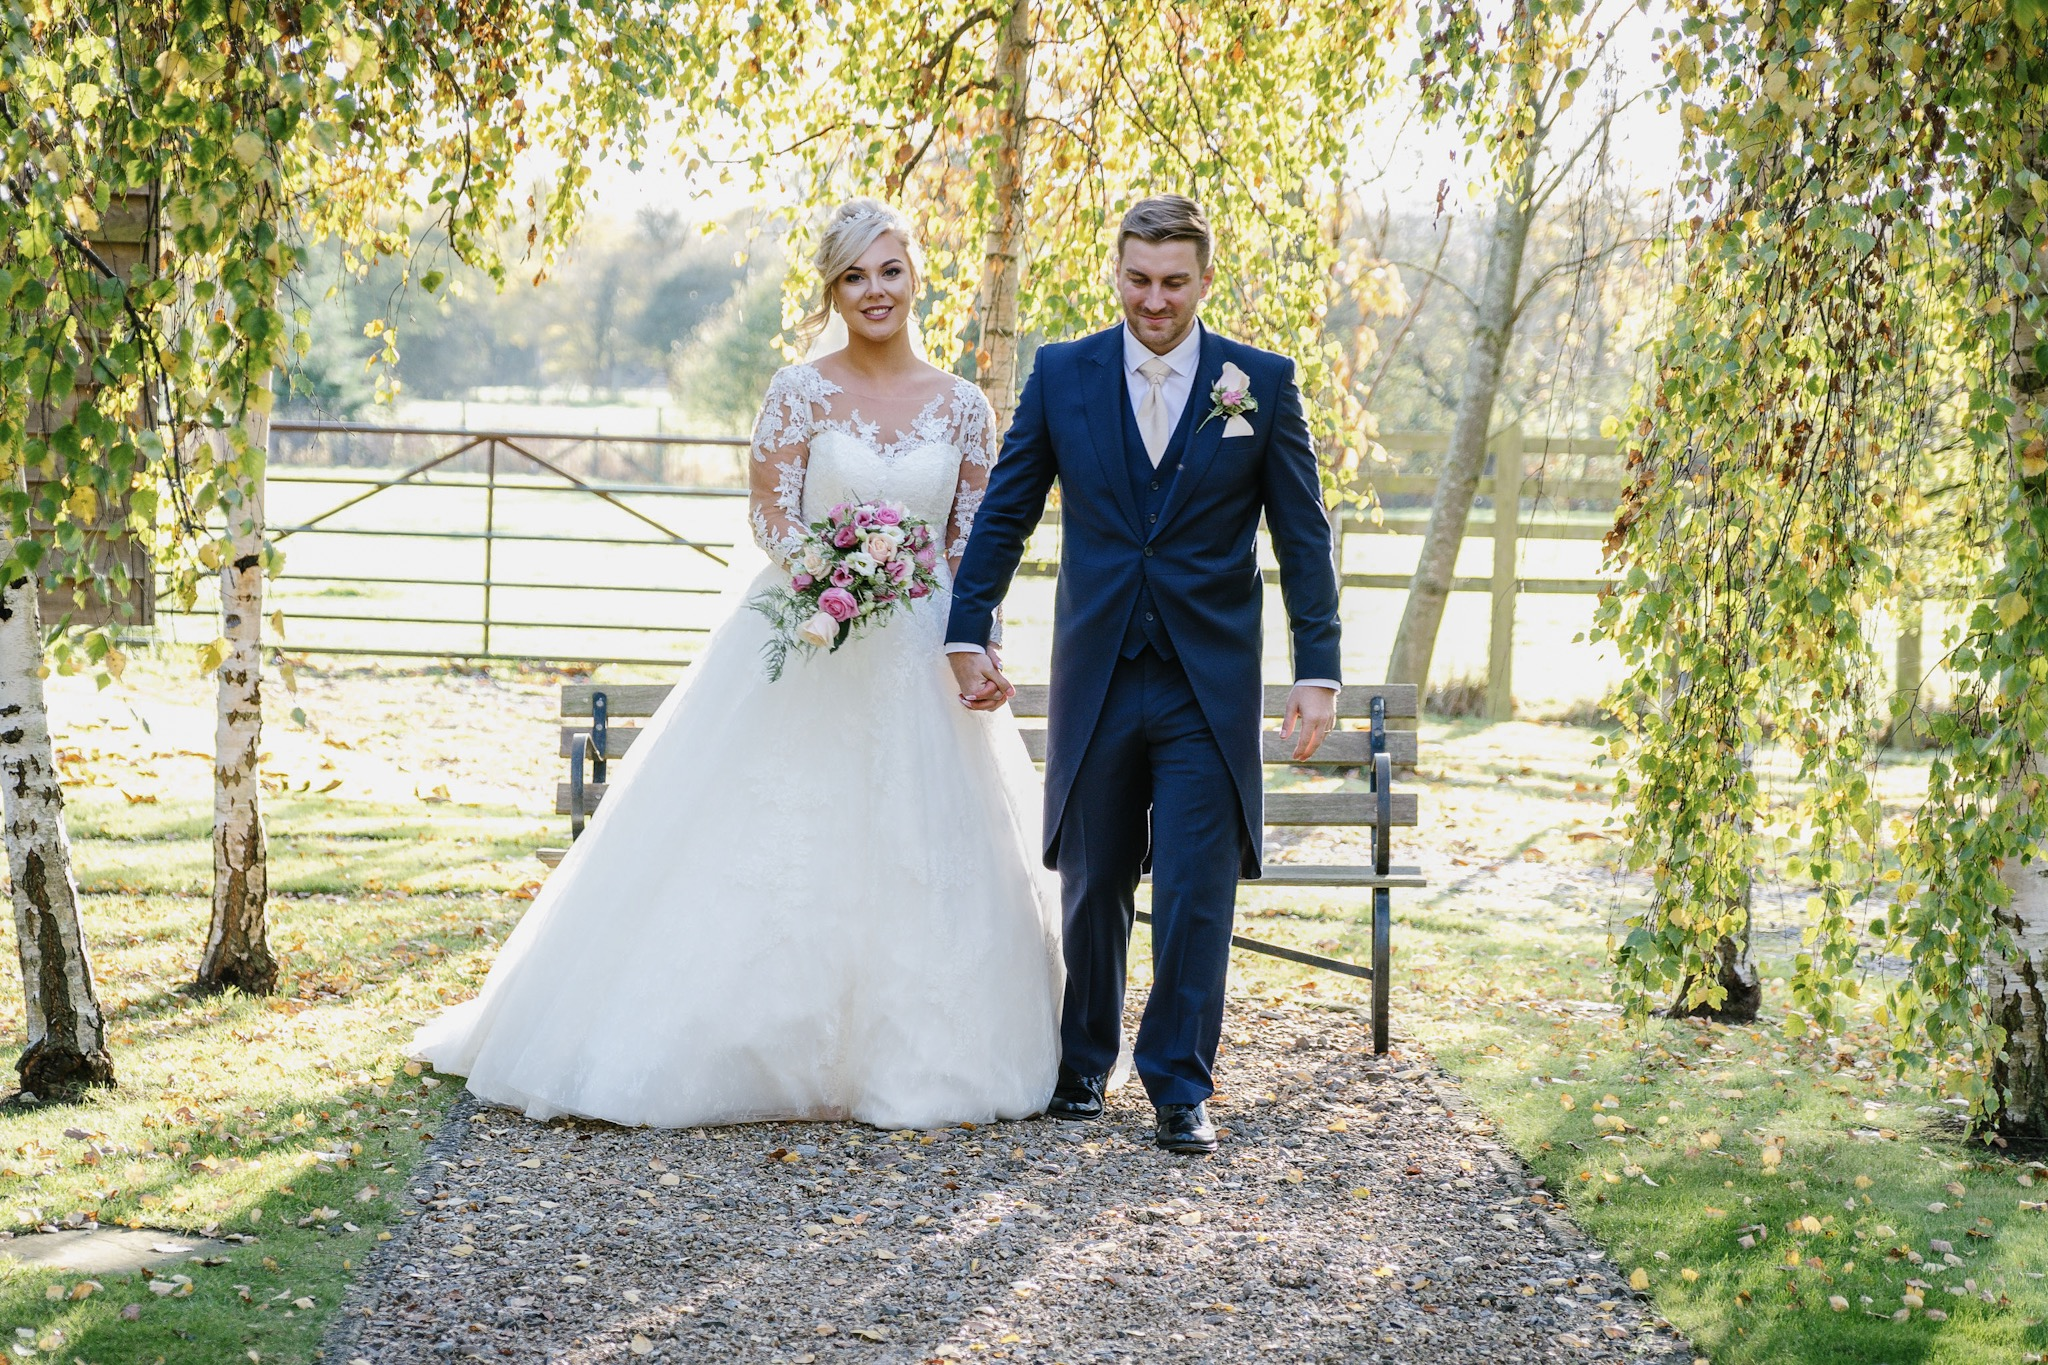 A bride and groom walking in the Autumn sun after their wedding at The Tythe Barn, Bicester